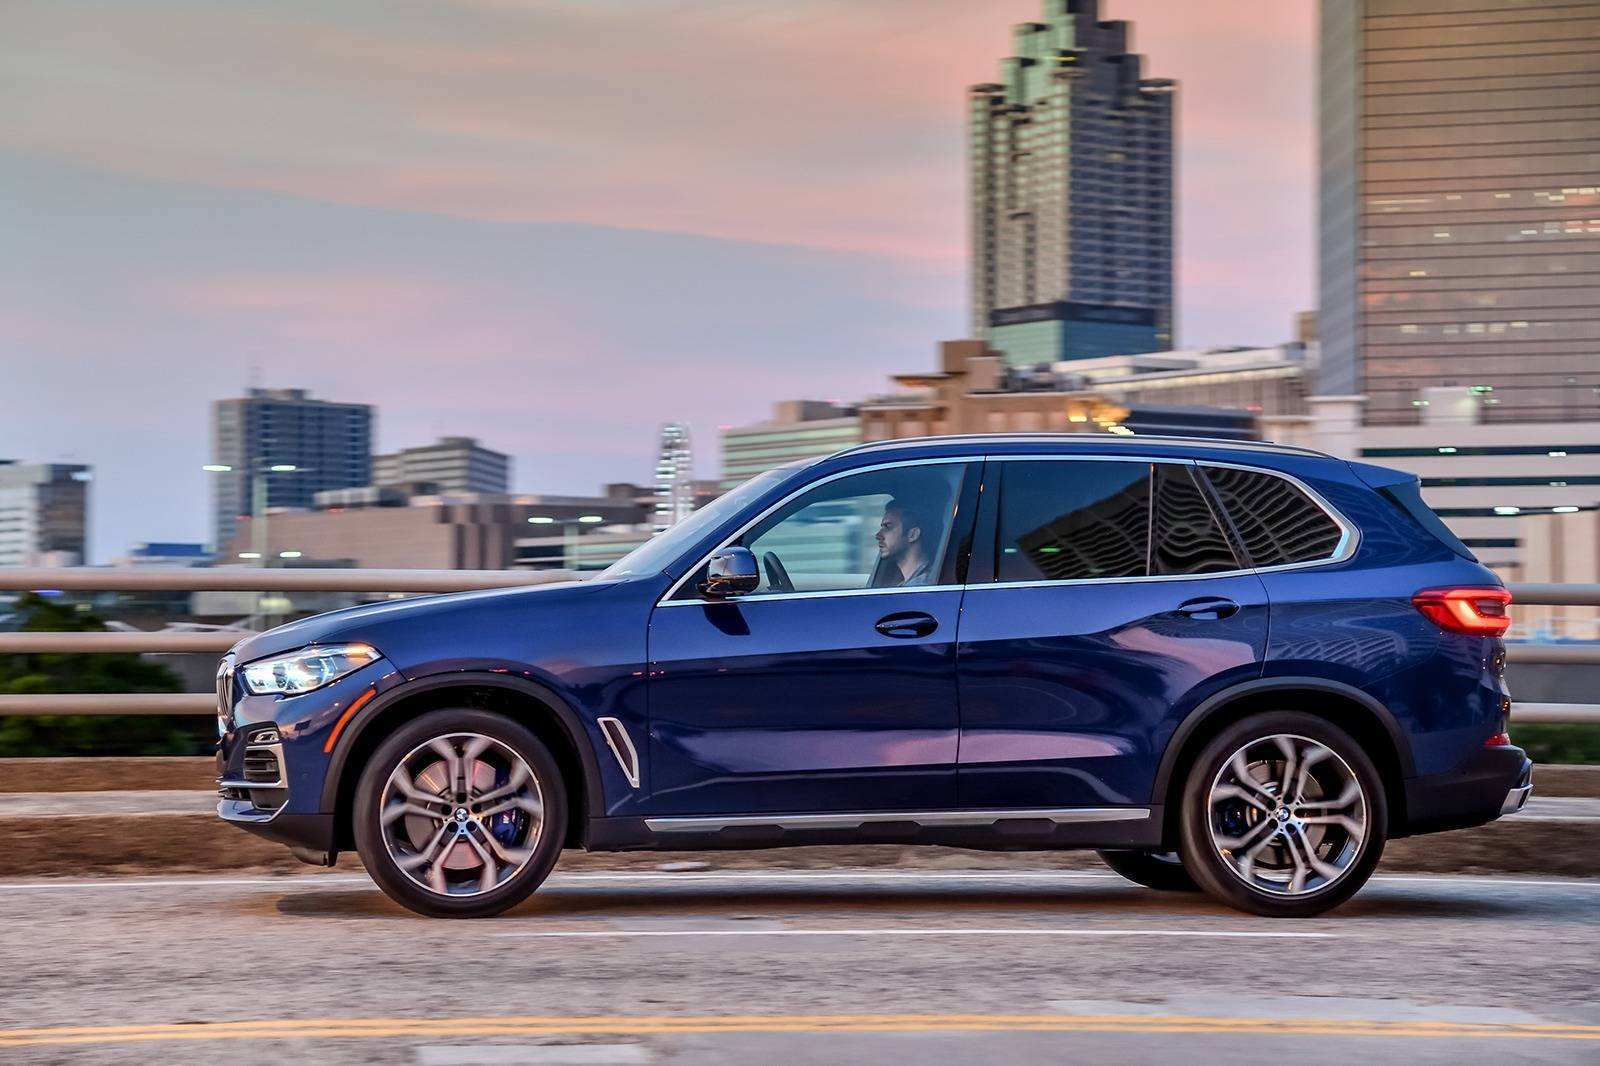 67 All New 2019 Bmw X5 Release Date History